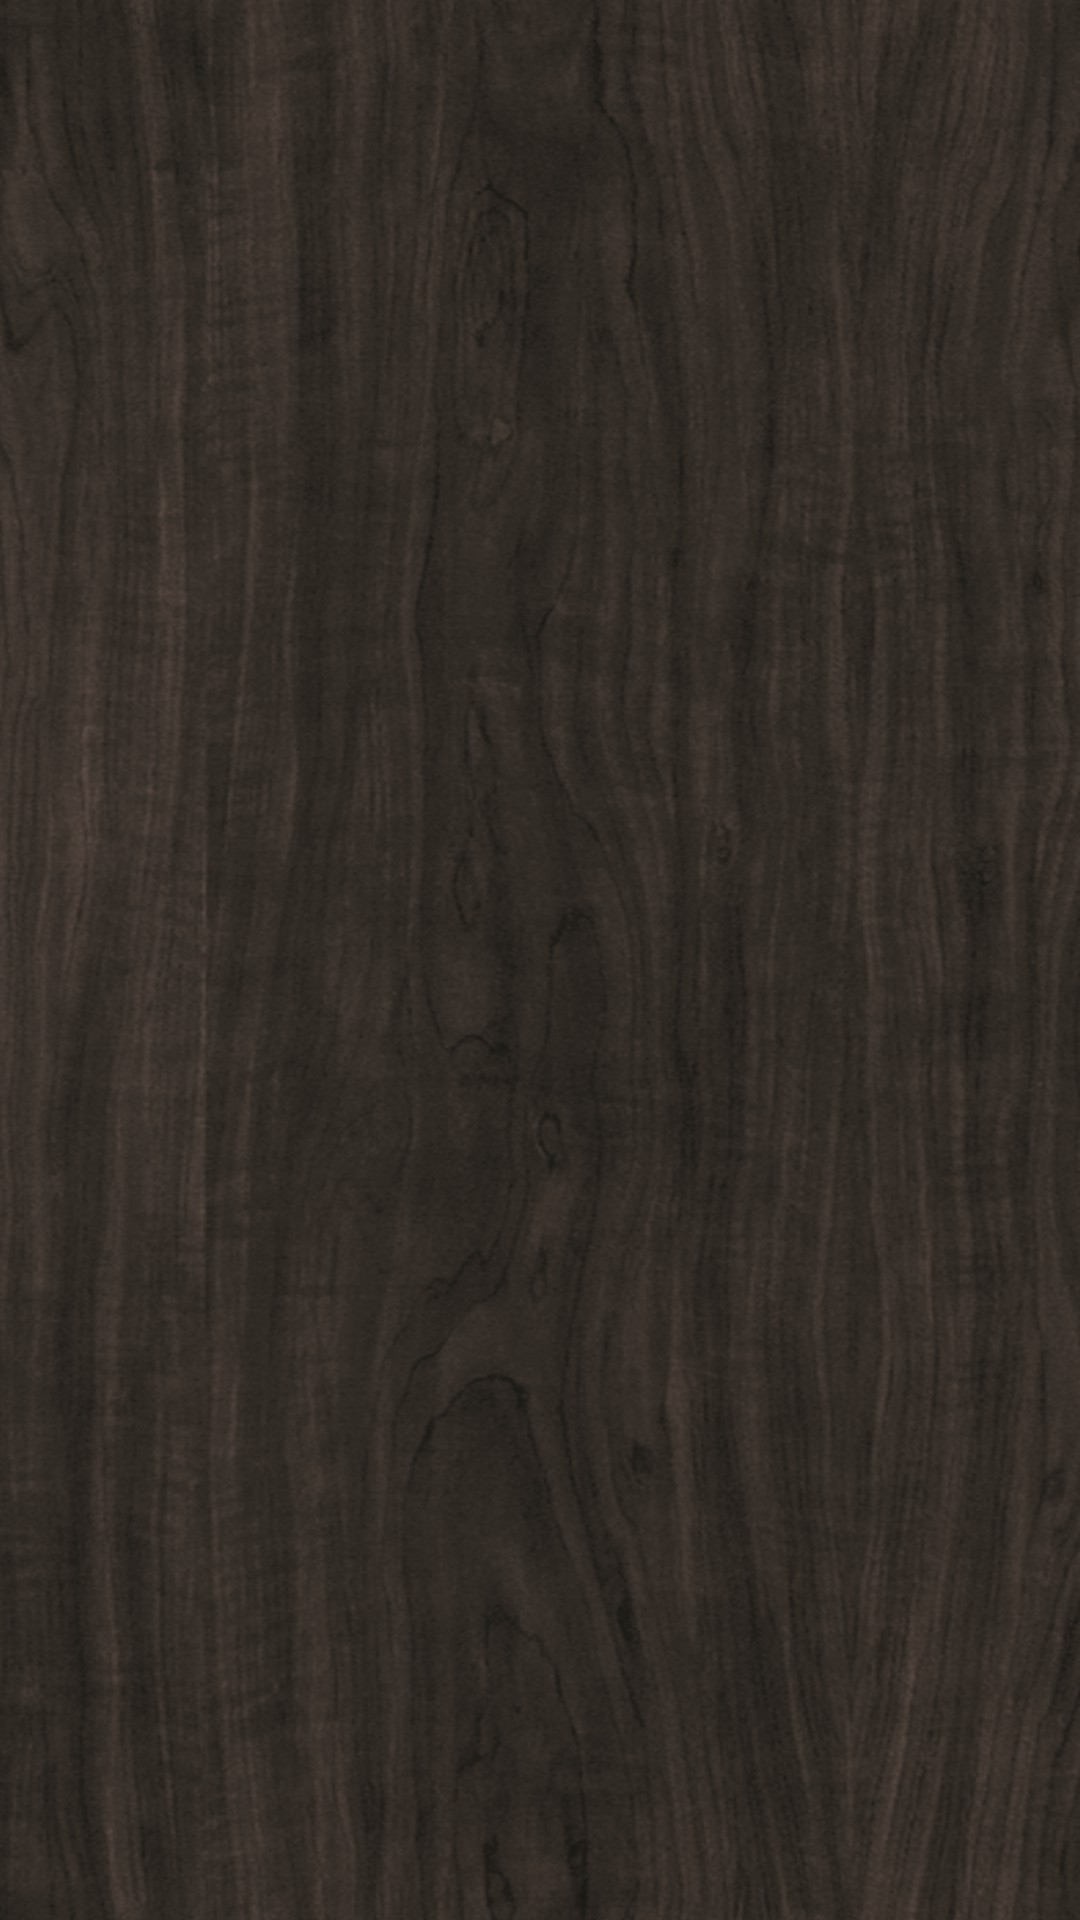 iphone wallpaper hd wood grain 762886